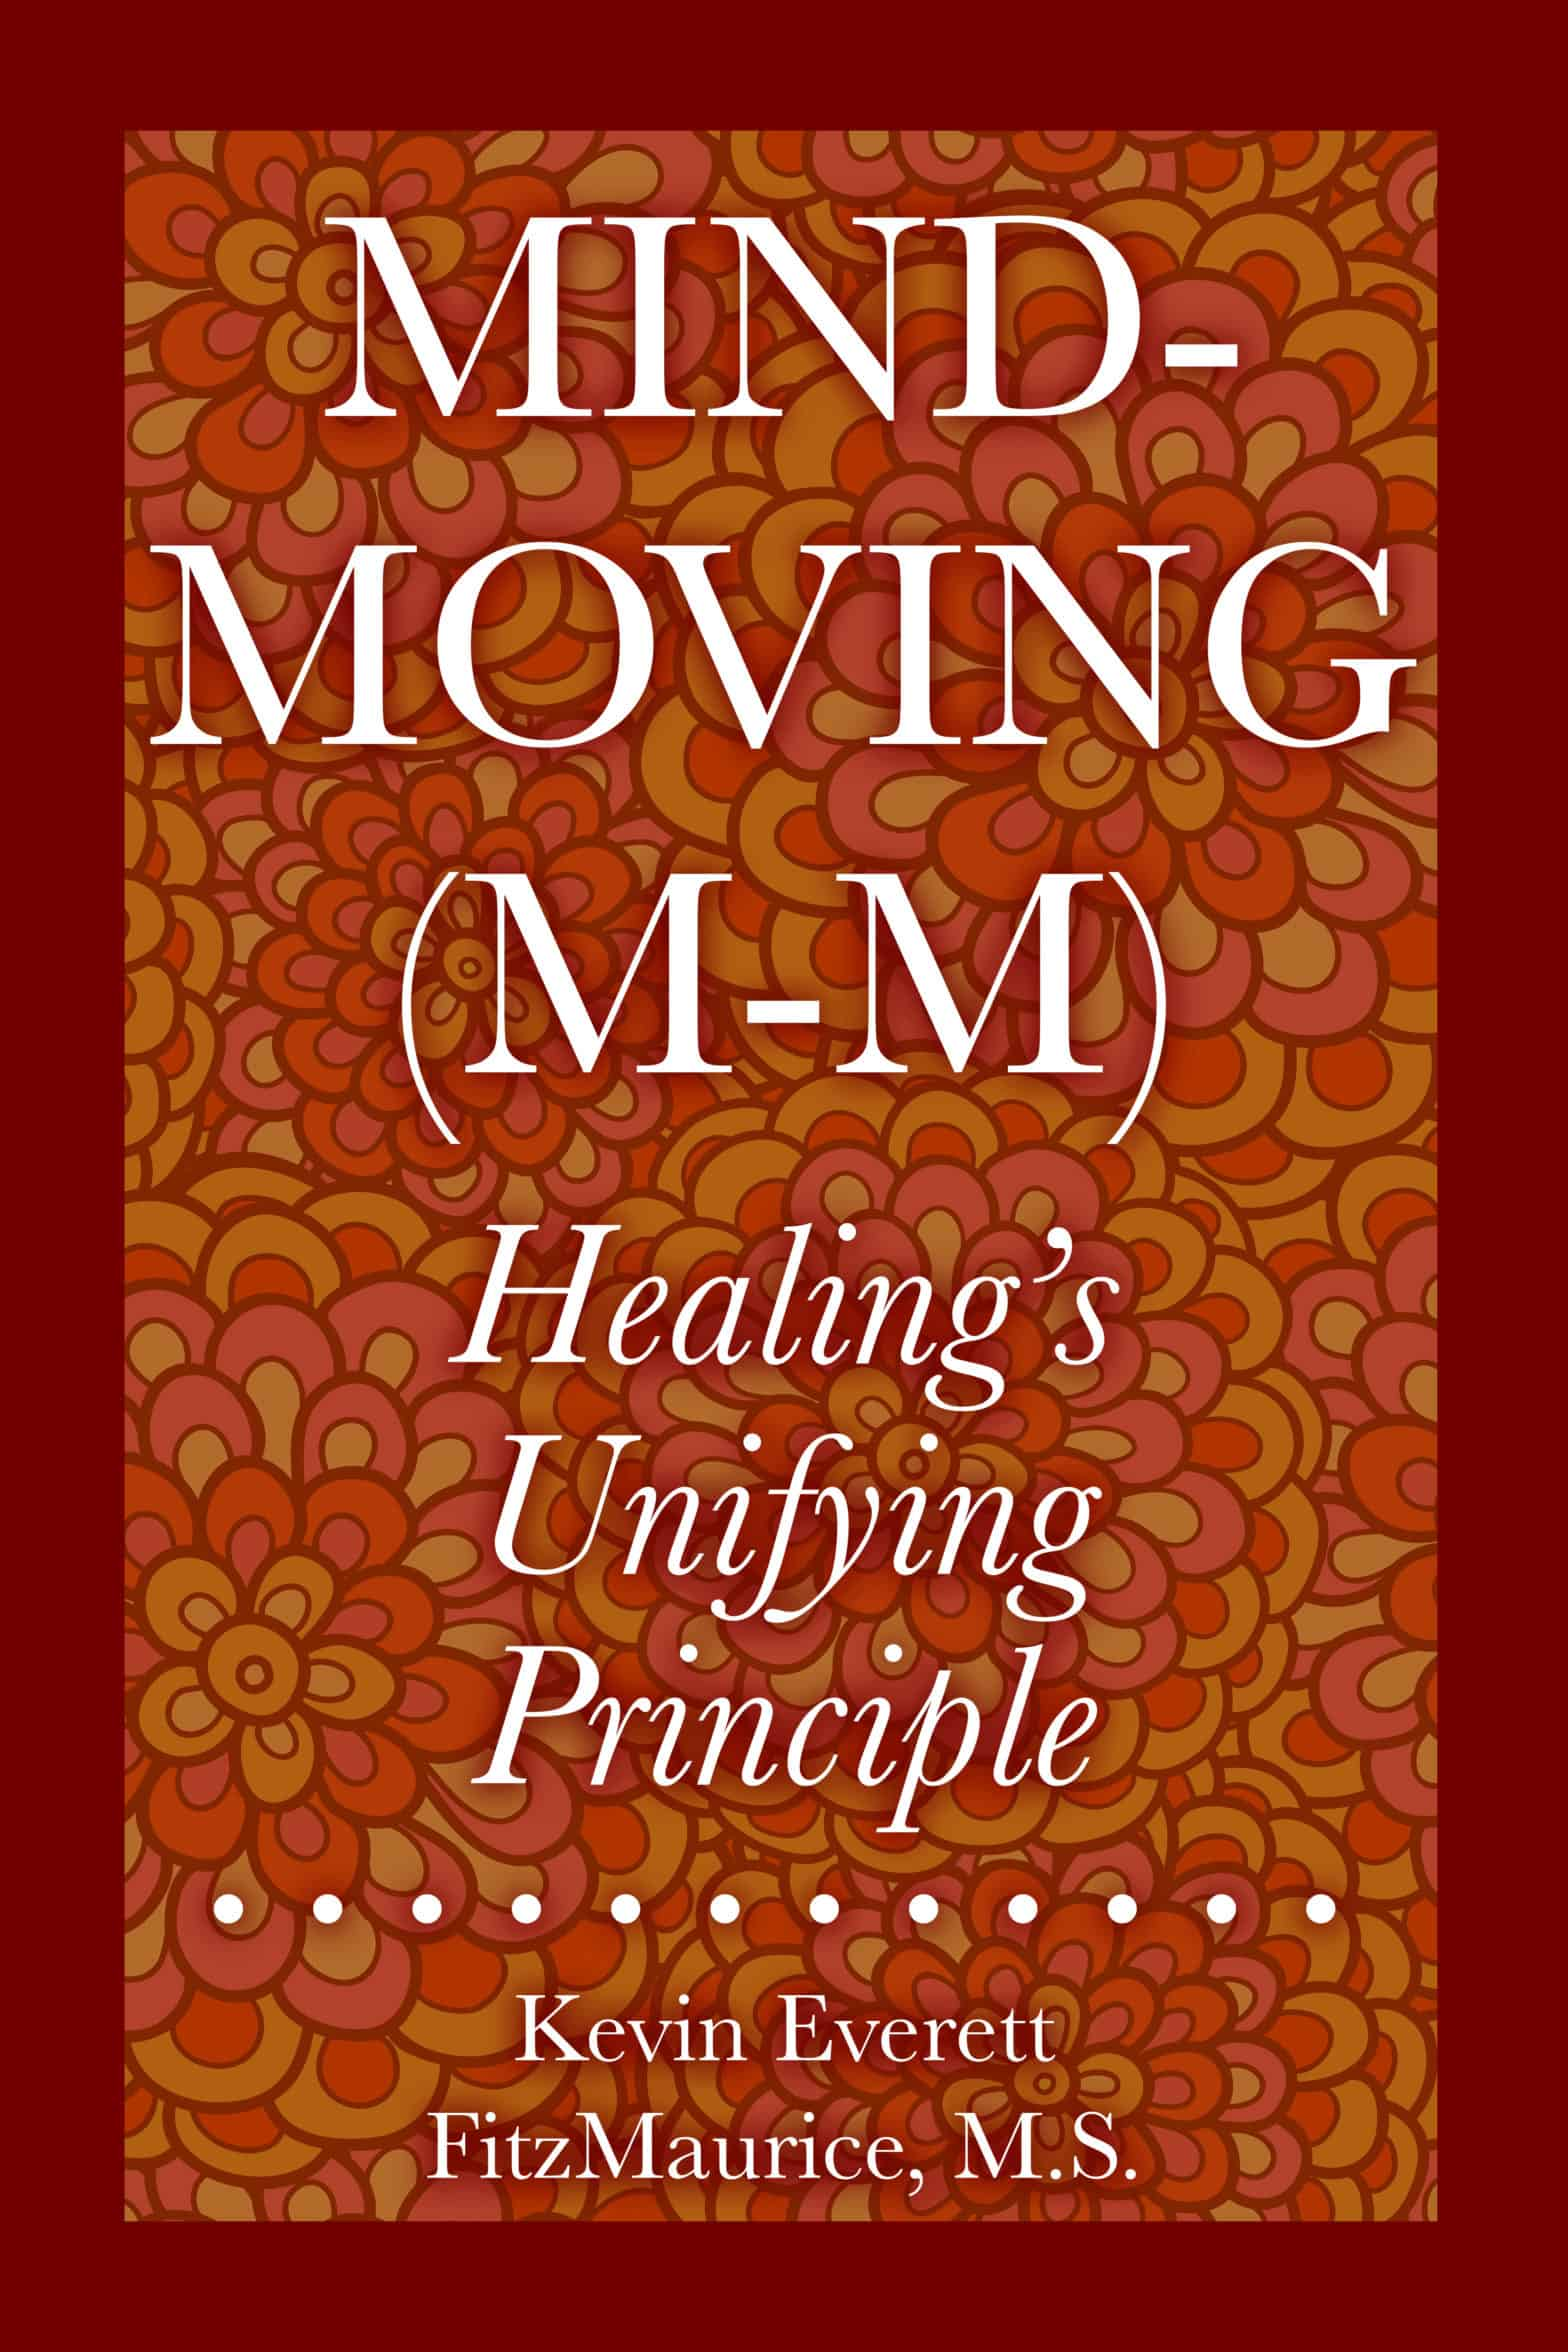 Cover for the book Mind-Moving (M-M)